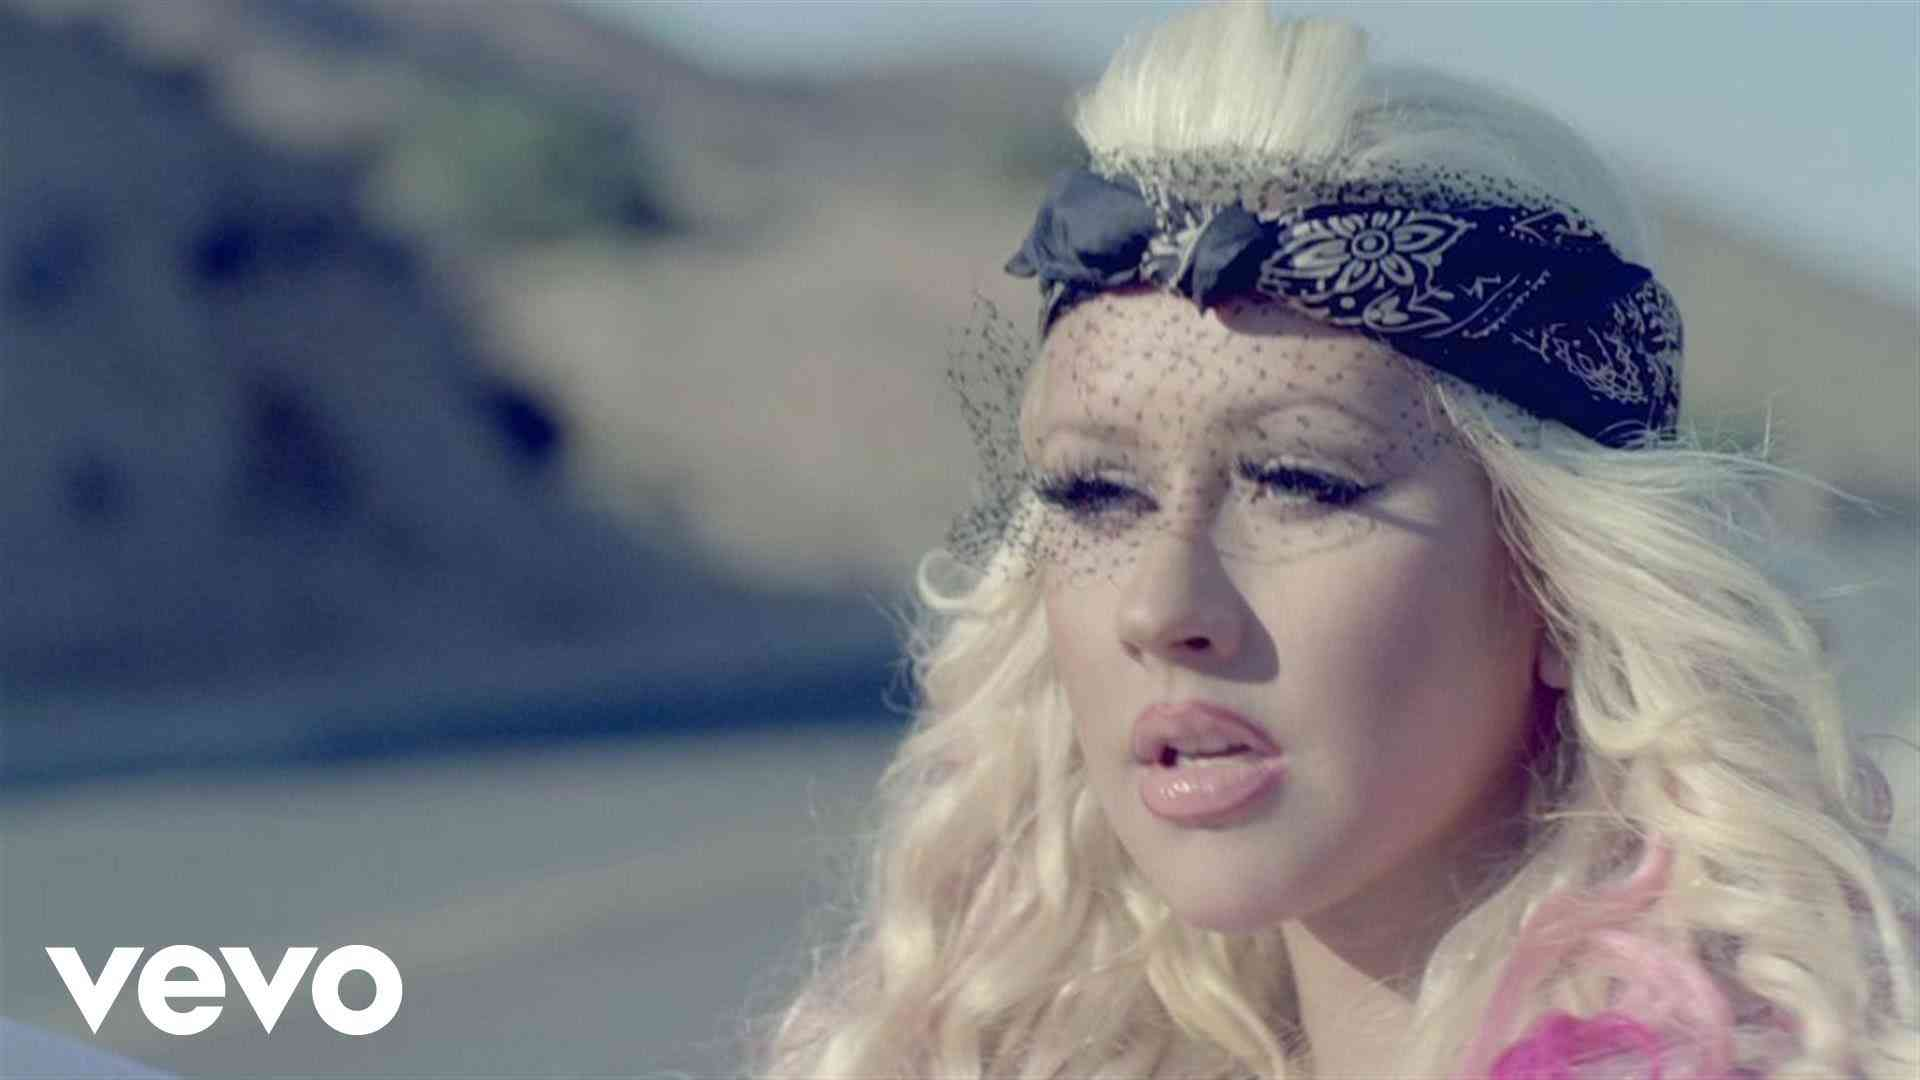 Christina Aguilera - Your Body (Clean Version) - YouTube